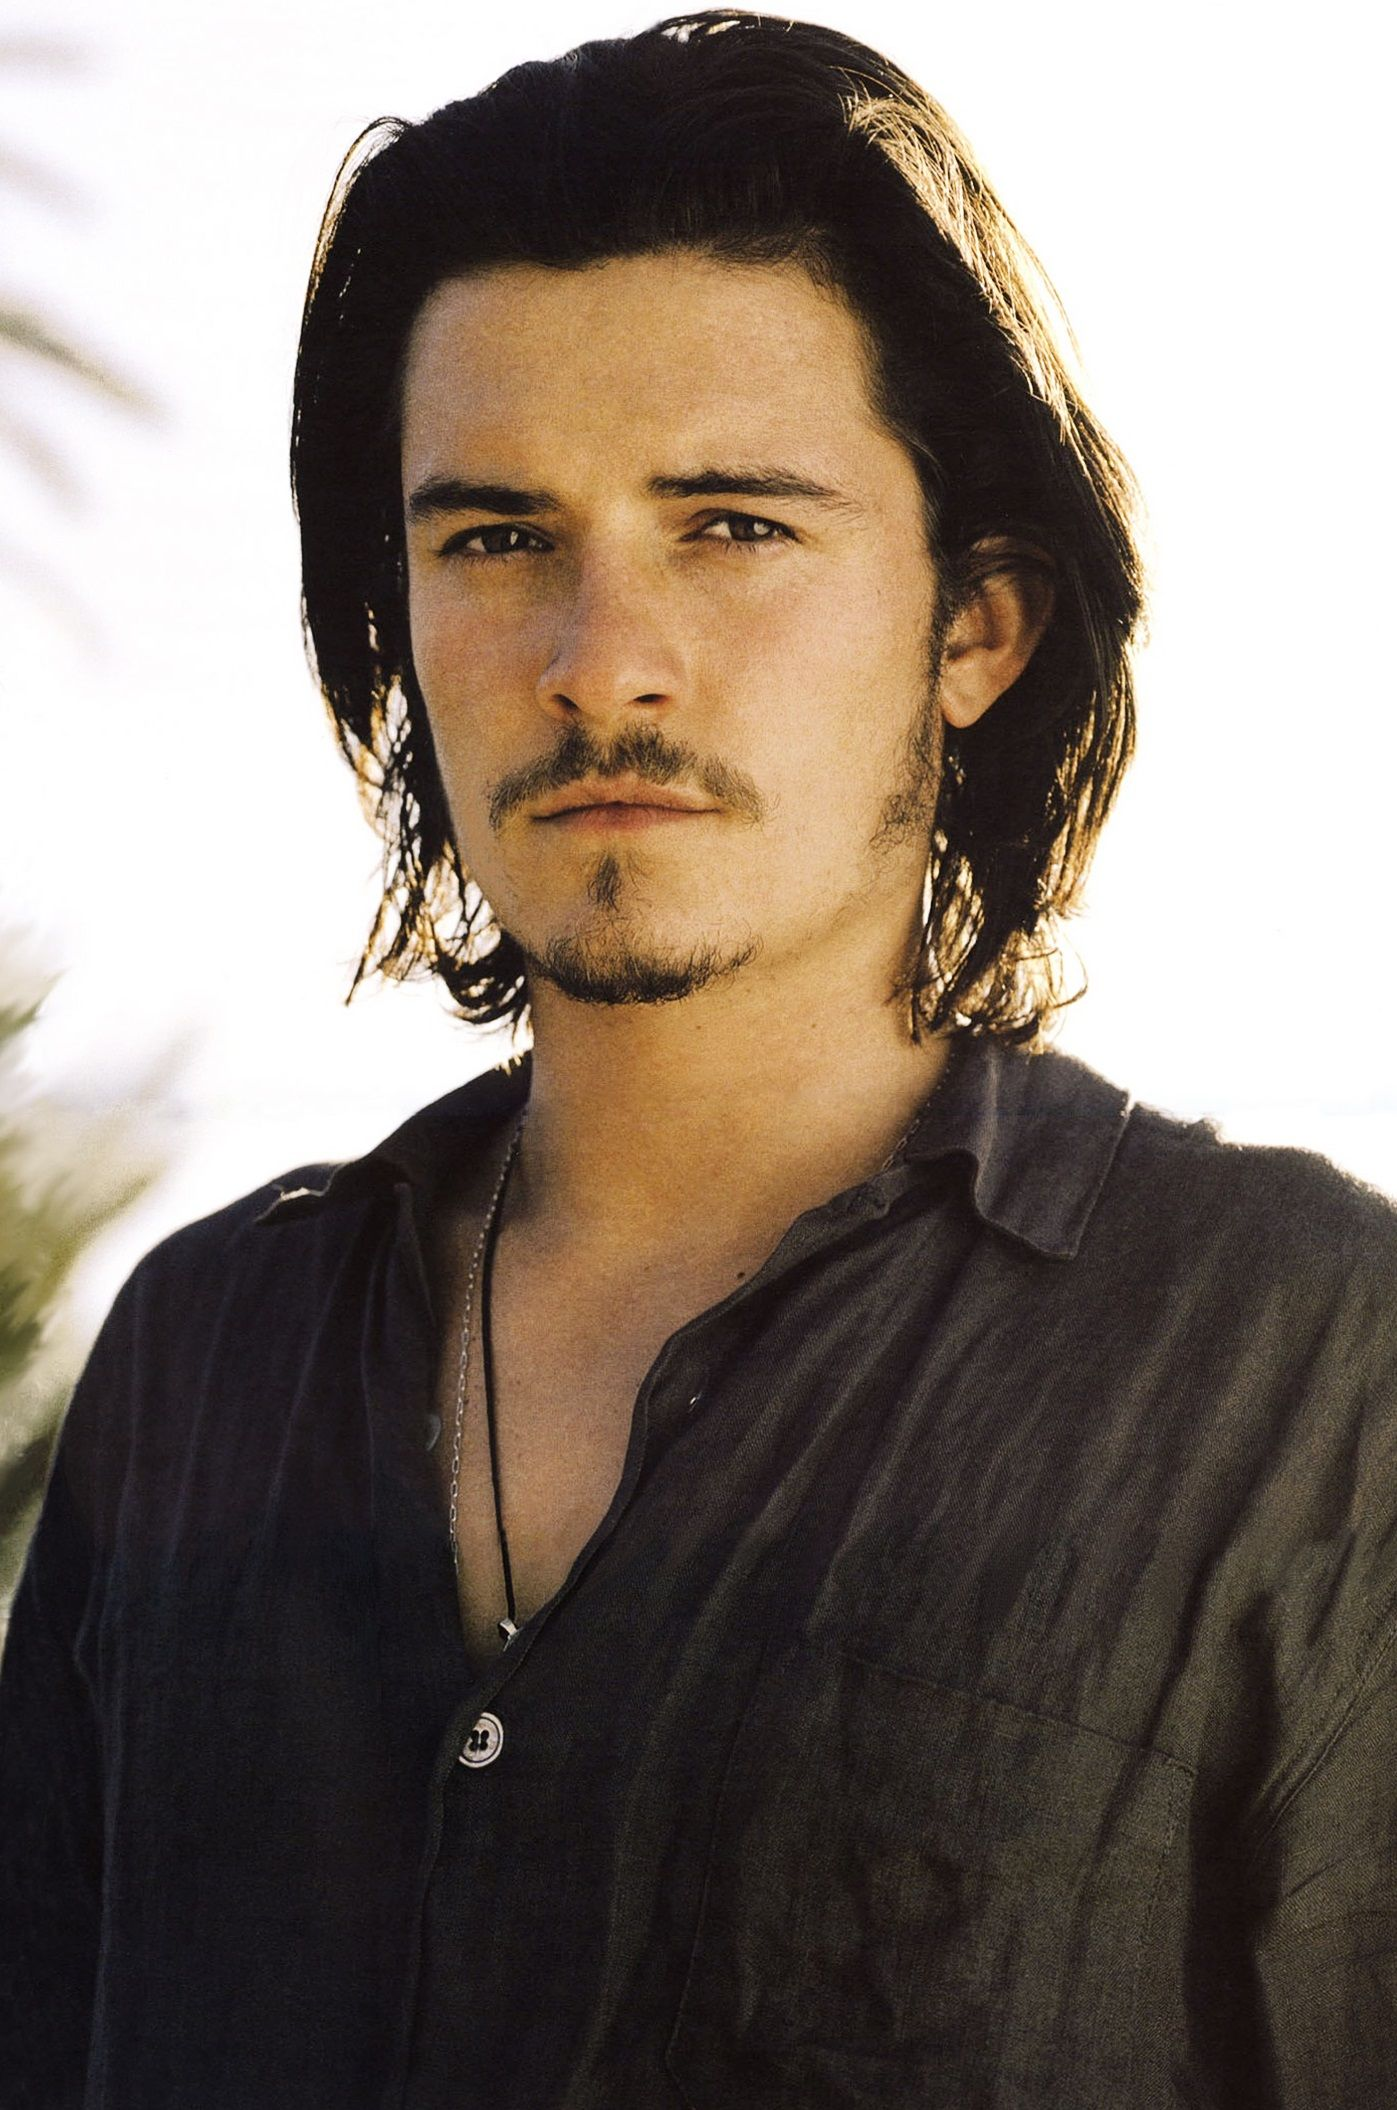 Nudes Orlando Bloom Born 1977 89 Pictures Selfie, Twitter-1201